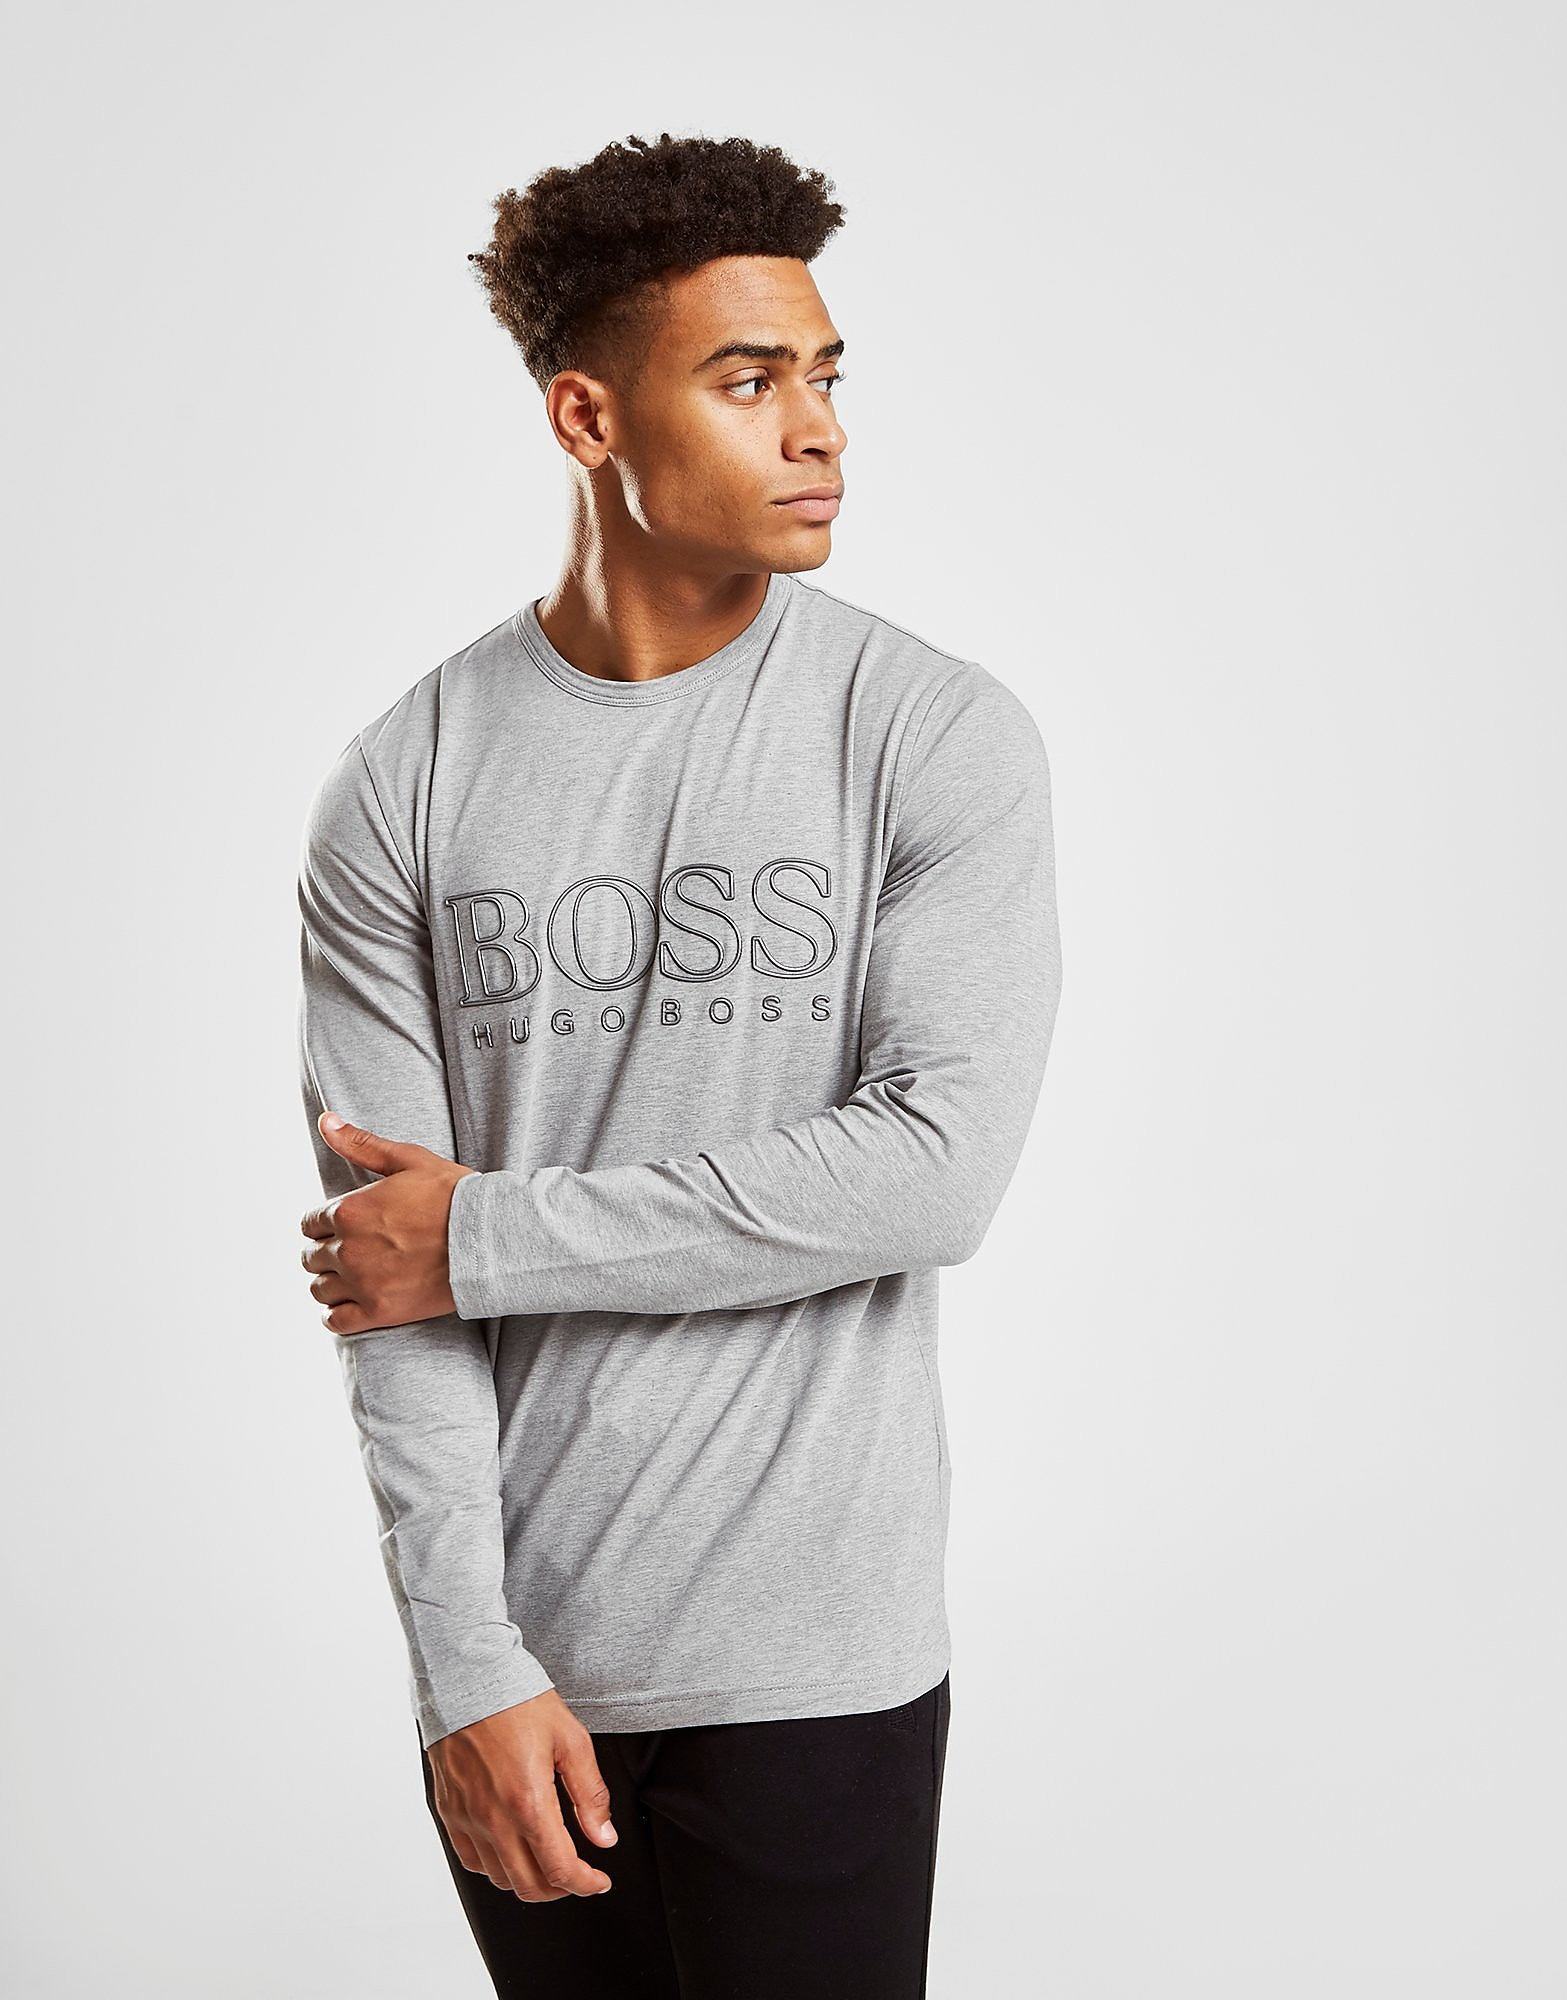 BOSS Green Long Sleeve T-Shirt Heren - Grijs - Heren